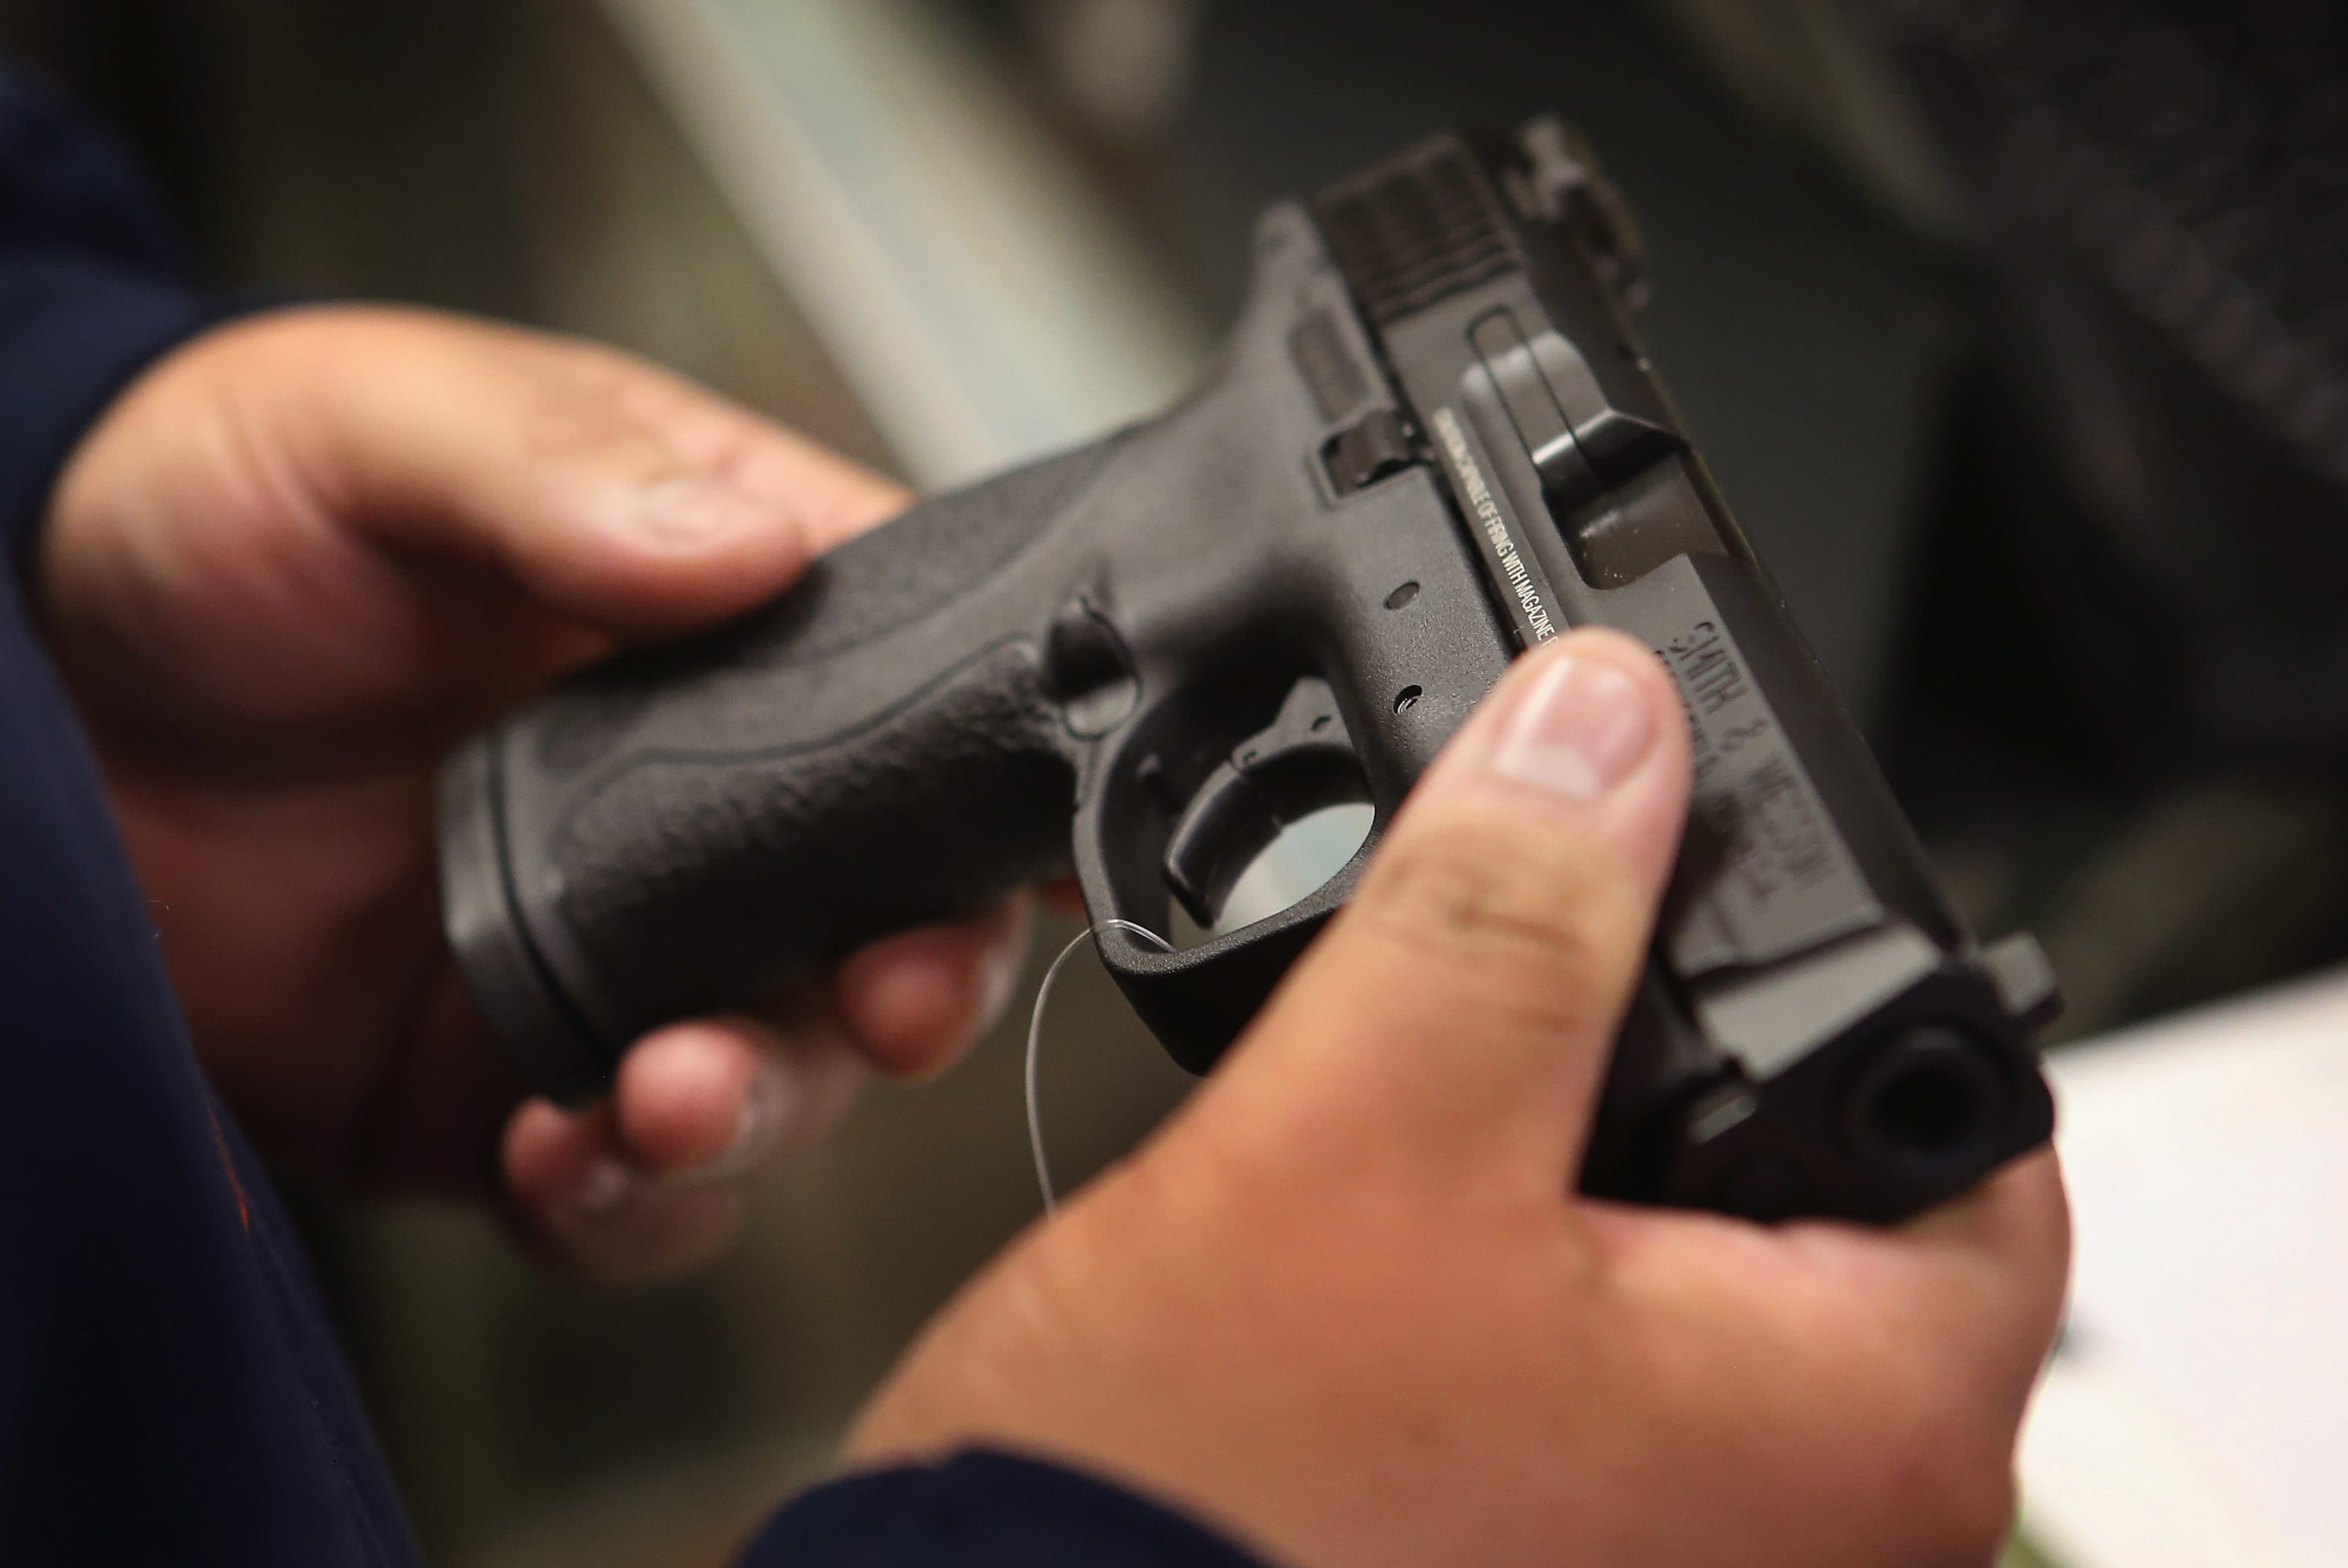 How to tell if you're invested in gun stocks